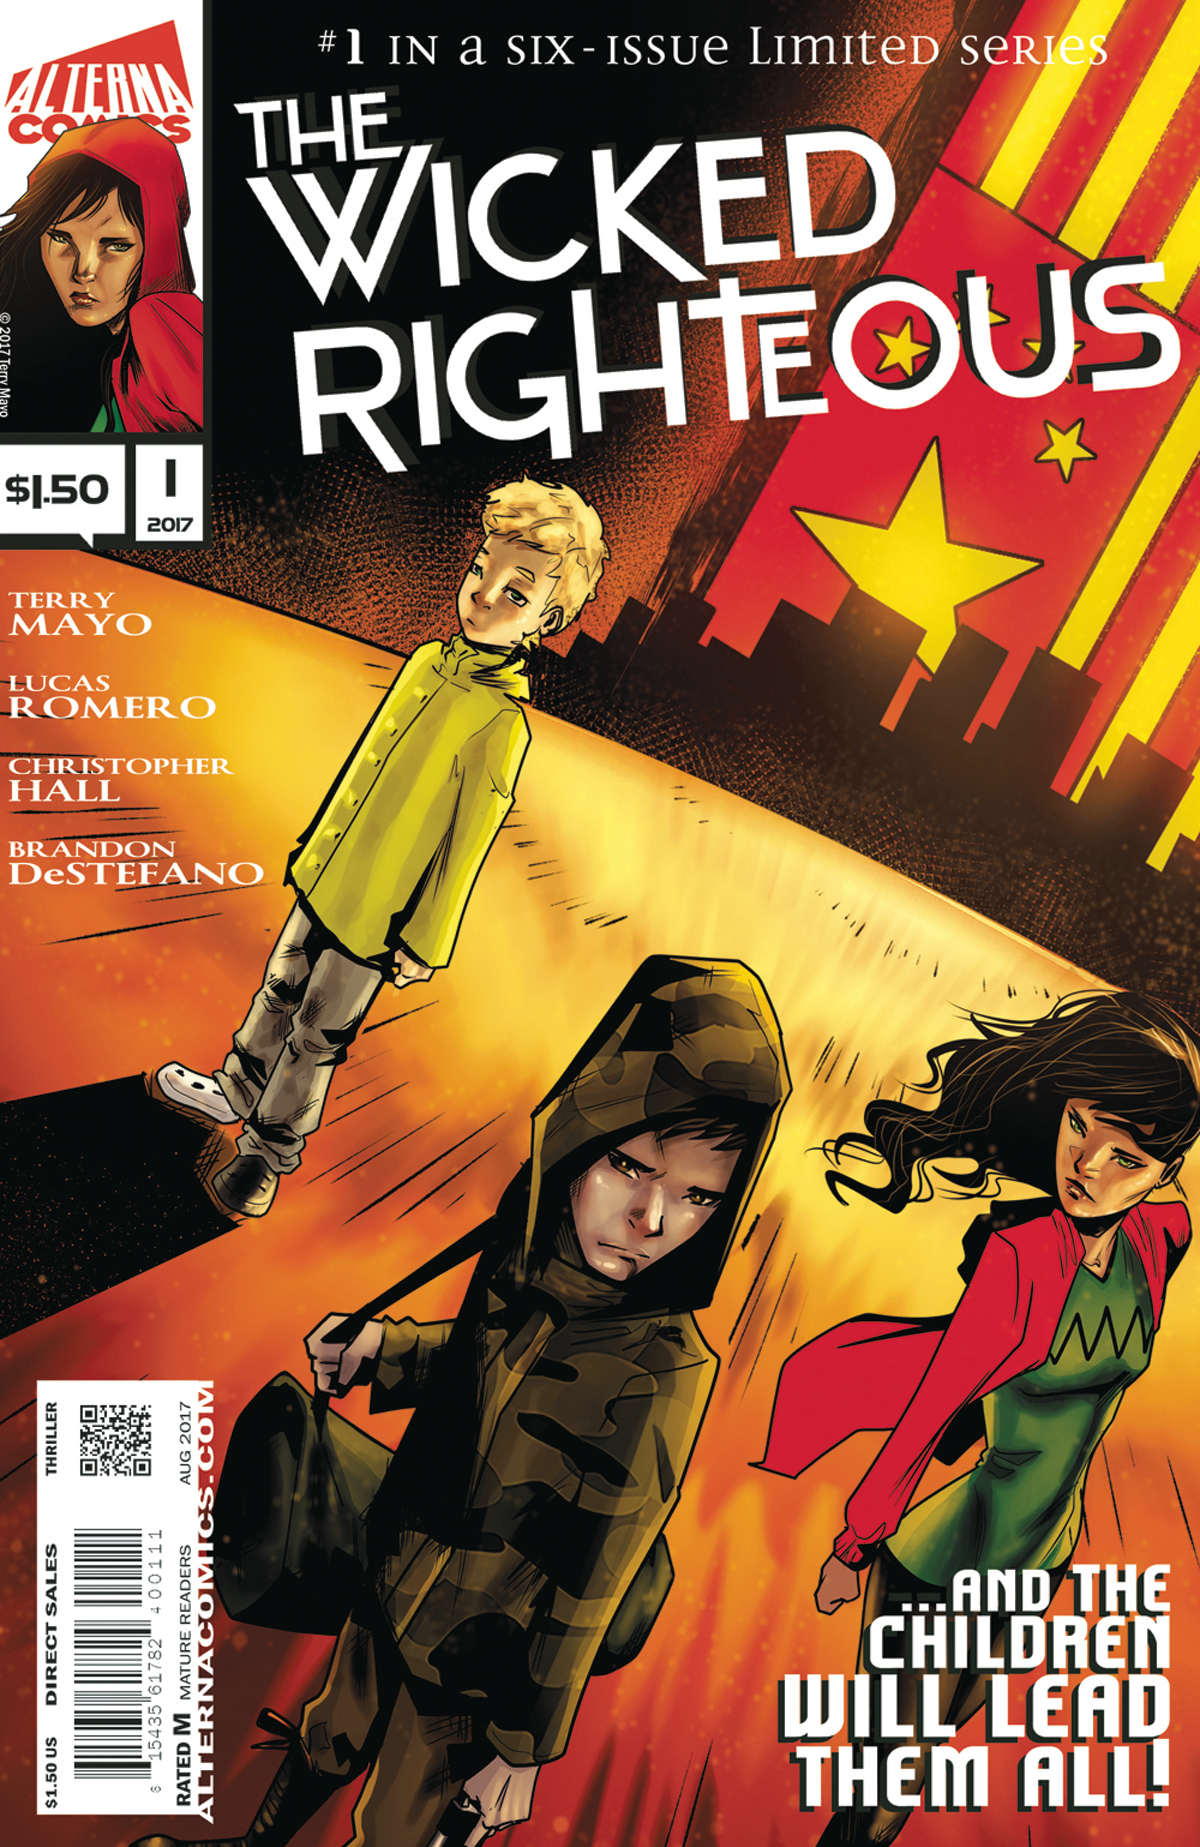 WICKED RIGHTEOUS #1 (OF 6) (MR)